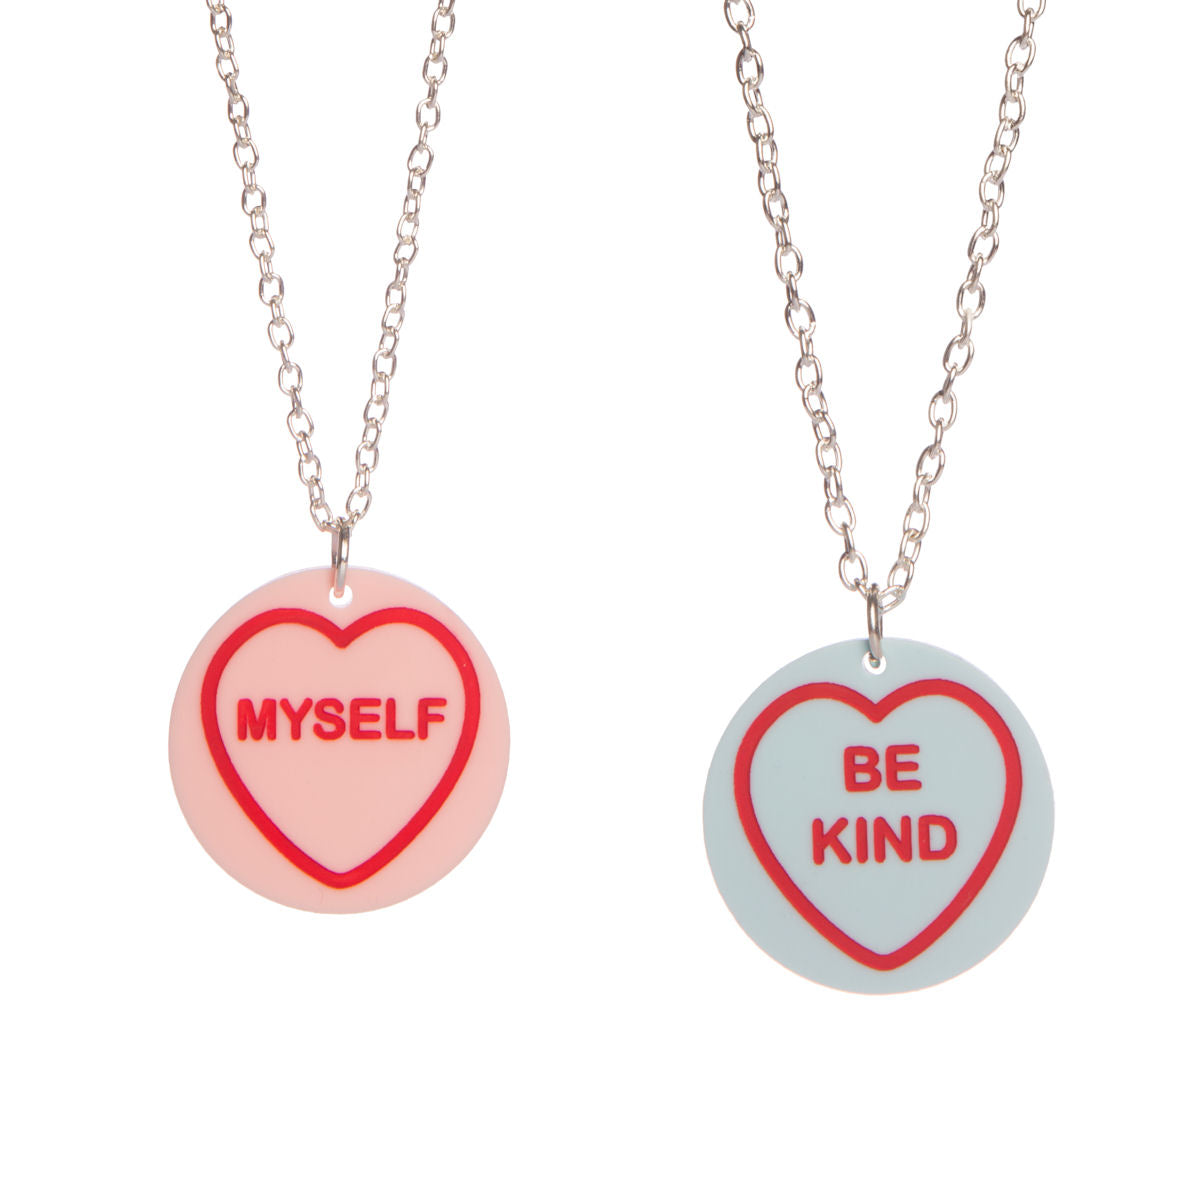 Sugar & Vice Self Love Hearts Necklace